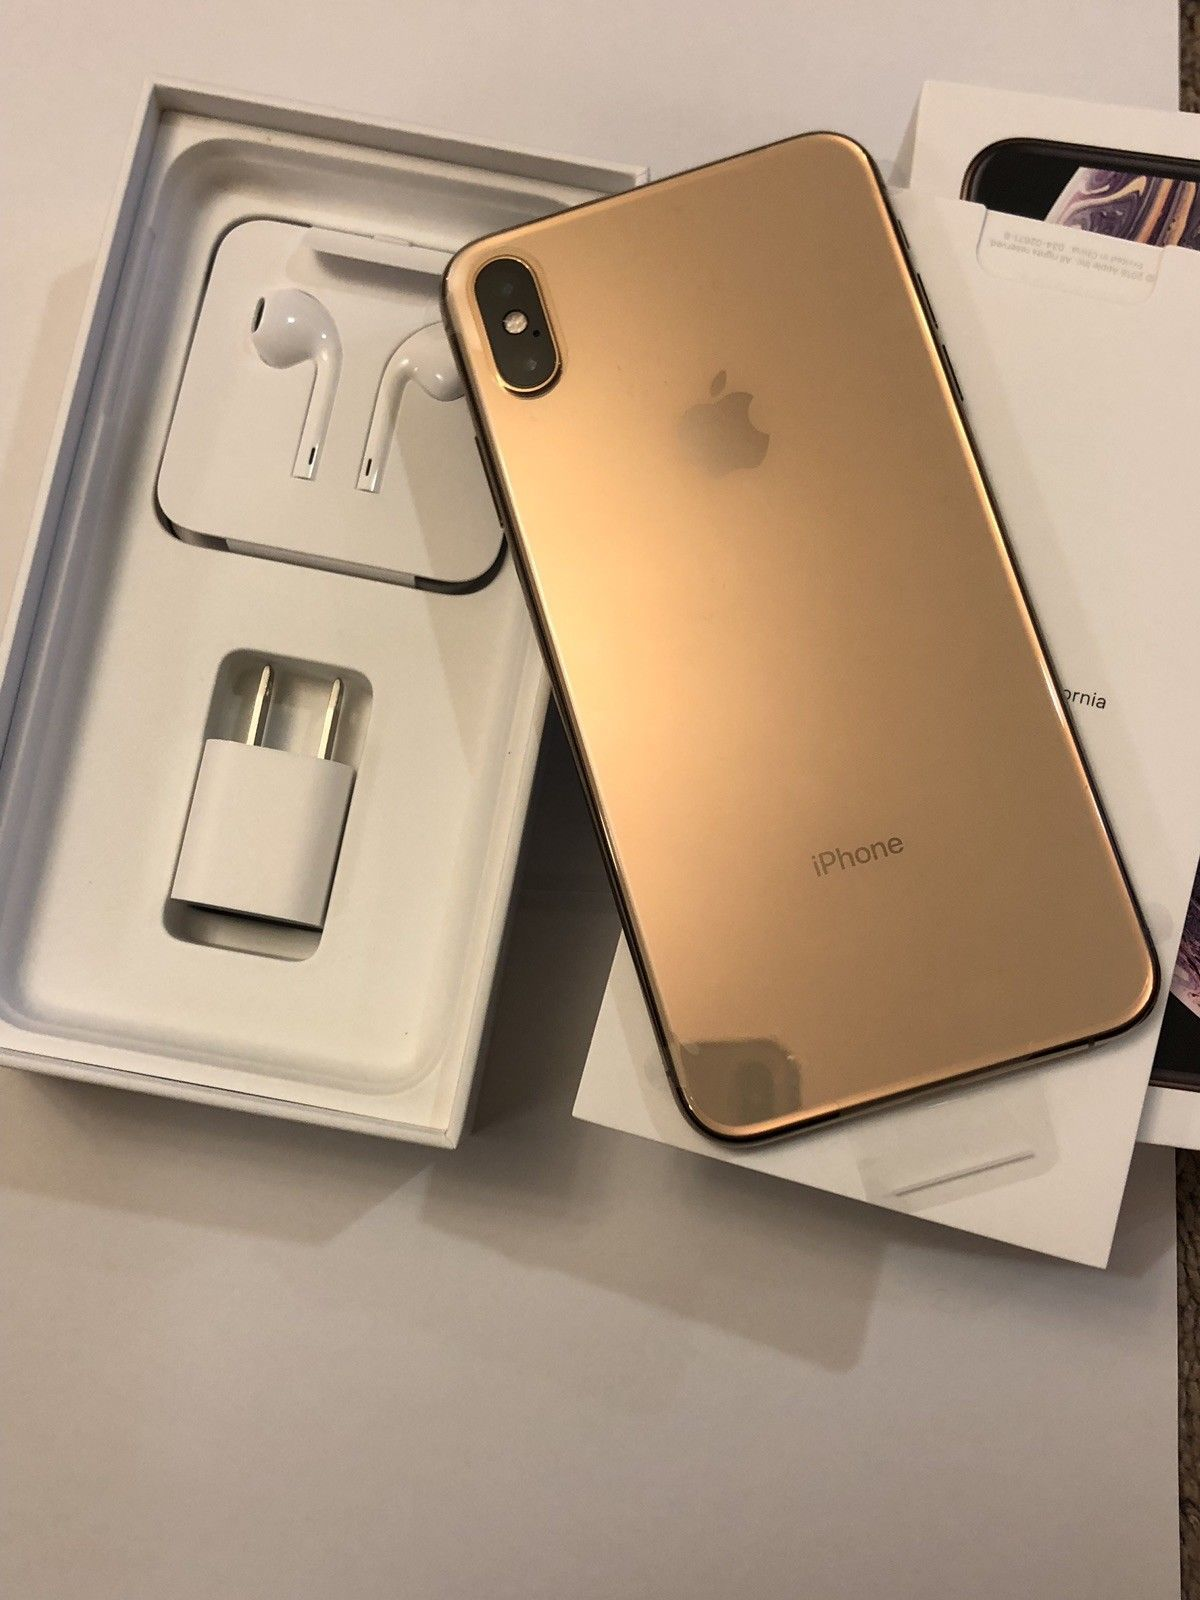 Apple Iphone Xs Max 512gb Gold Verizon A1921 For Sale Free Local Classifieds Ads Quick Market Apple Iphone Gold Iphone Apple Phone